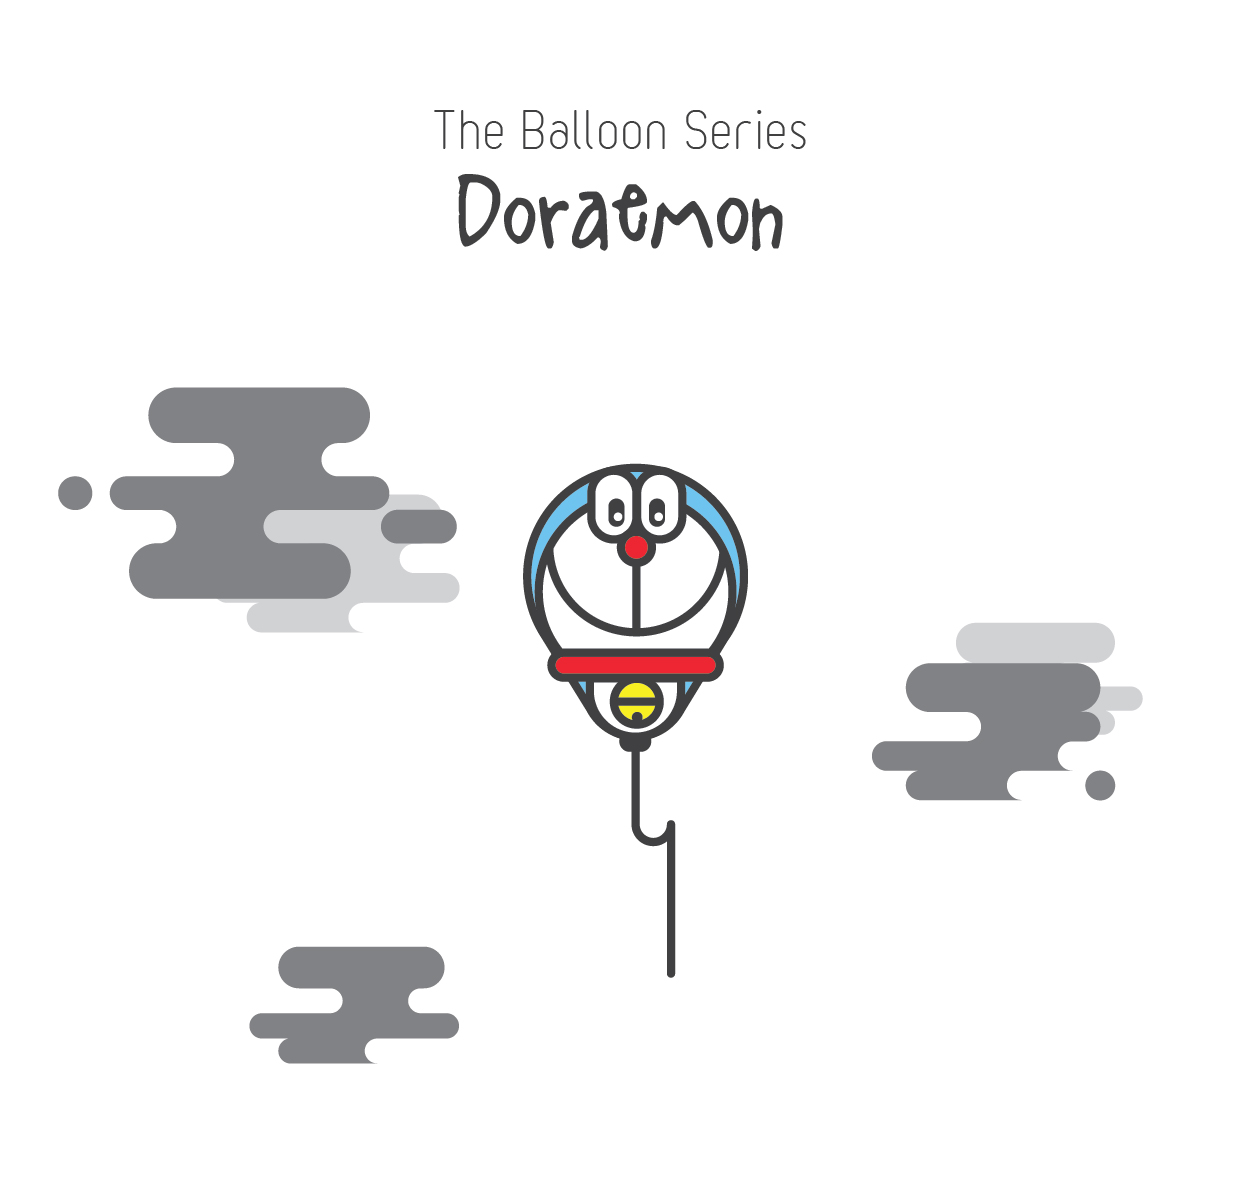 The Balloon Series - Doraemon